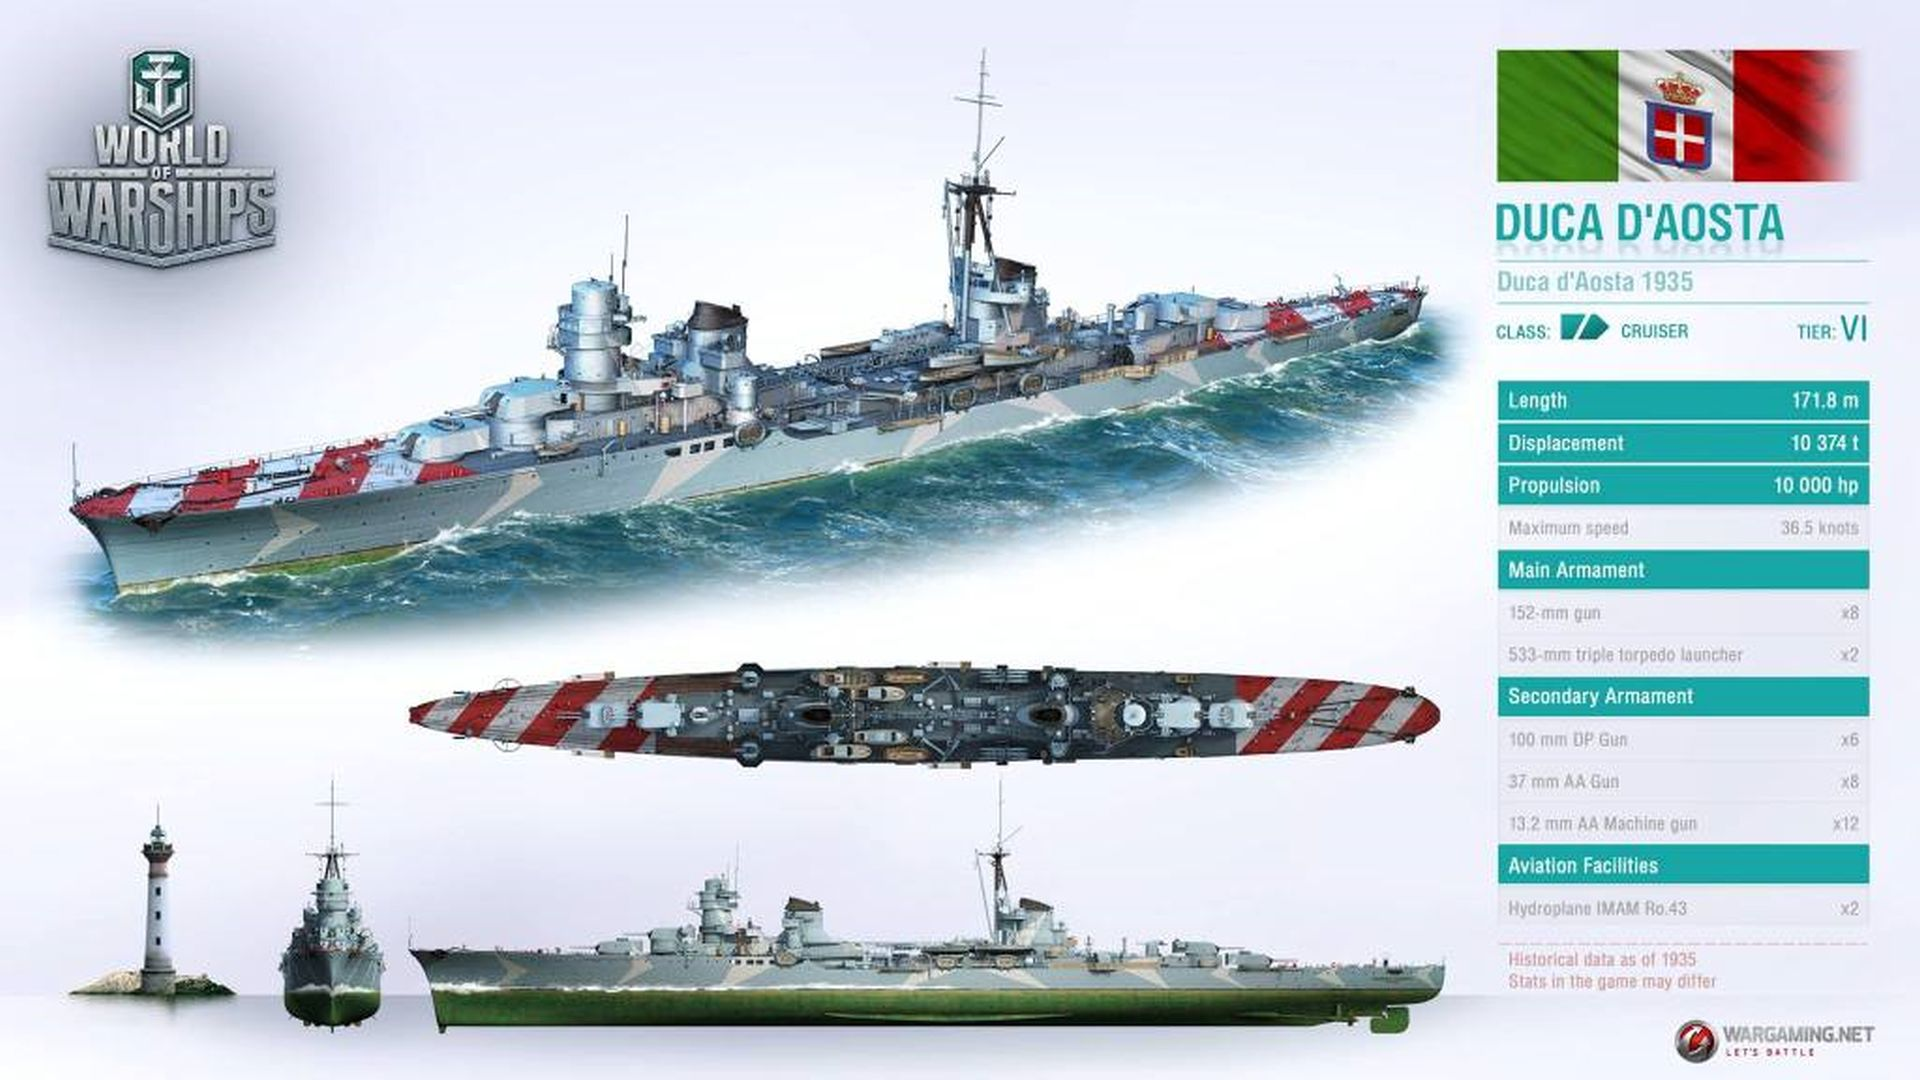 World of Warships duca d aosta